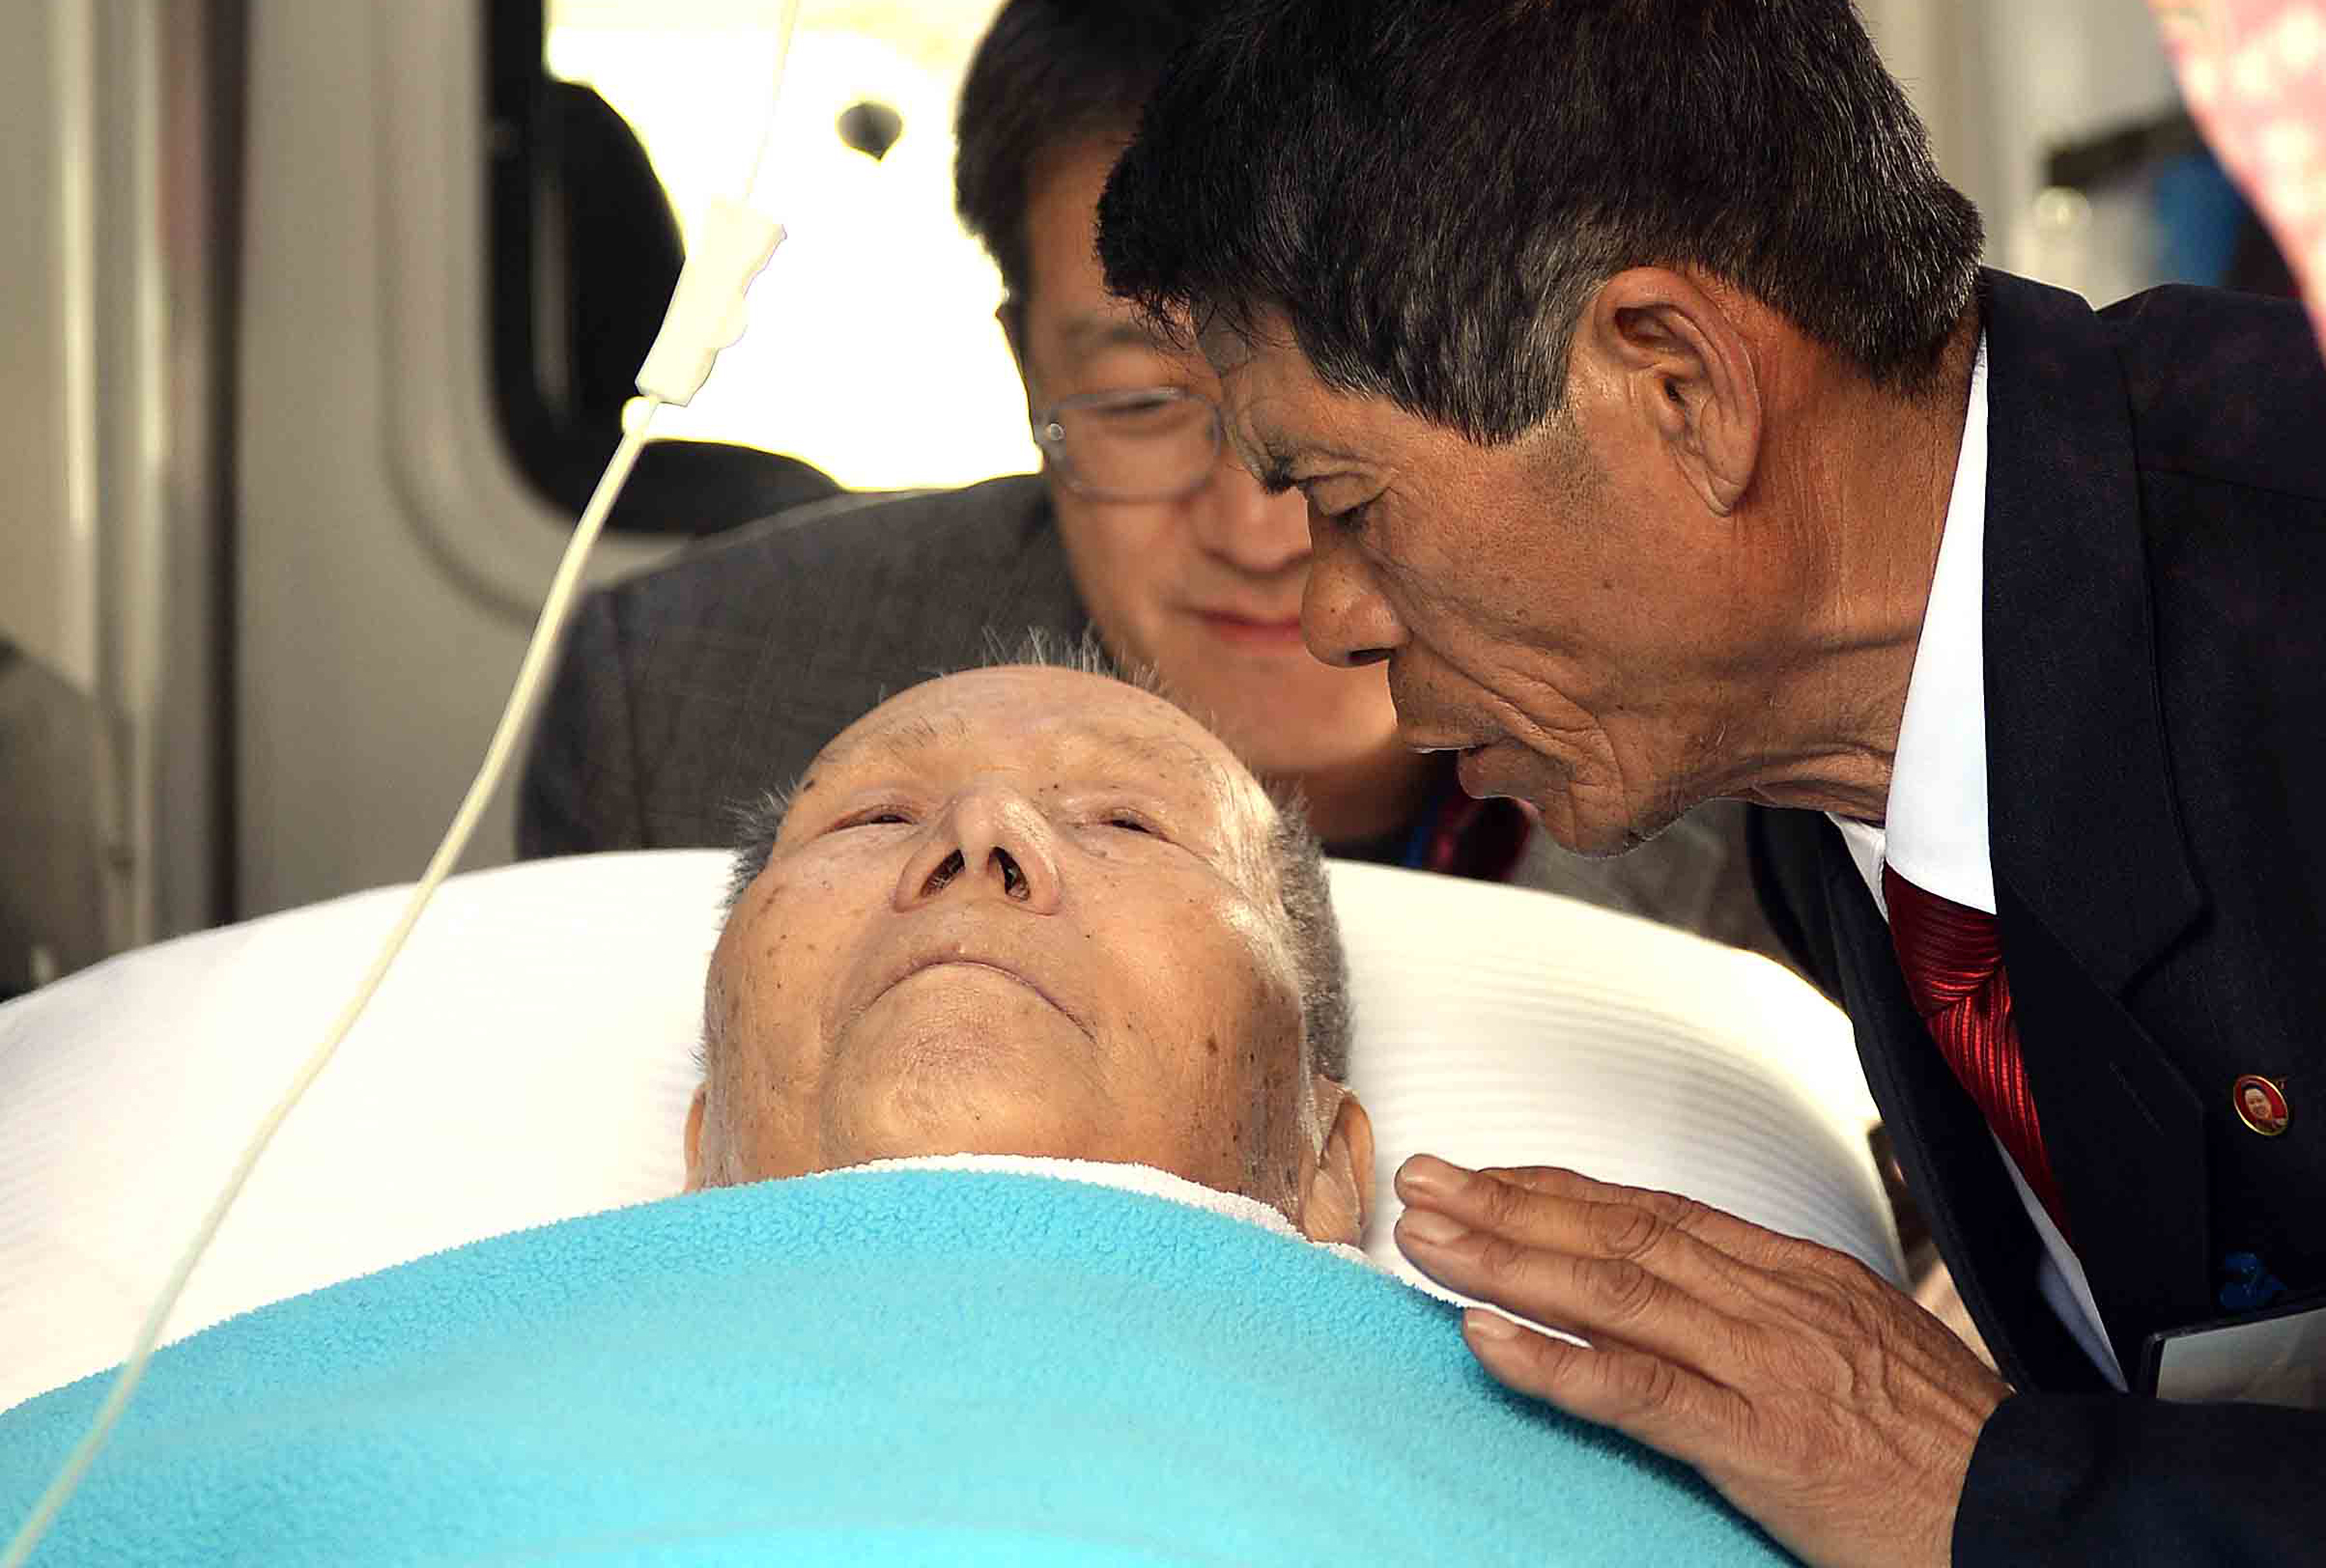 Kim Jin-chun, 66, says goodbye to his 91-year-old father Kim Sum-kyung from the South, in an ambulance parked in front of a hotel in Mt. Geumgang Resort in North Korea, Friday. The father had to return to the South a day before the official closing of the reunions of separated families during the Korea War, due to health problems.  (Yonhap)